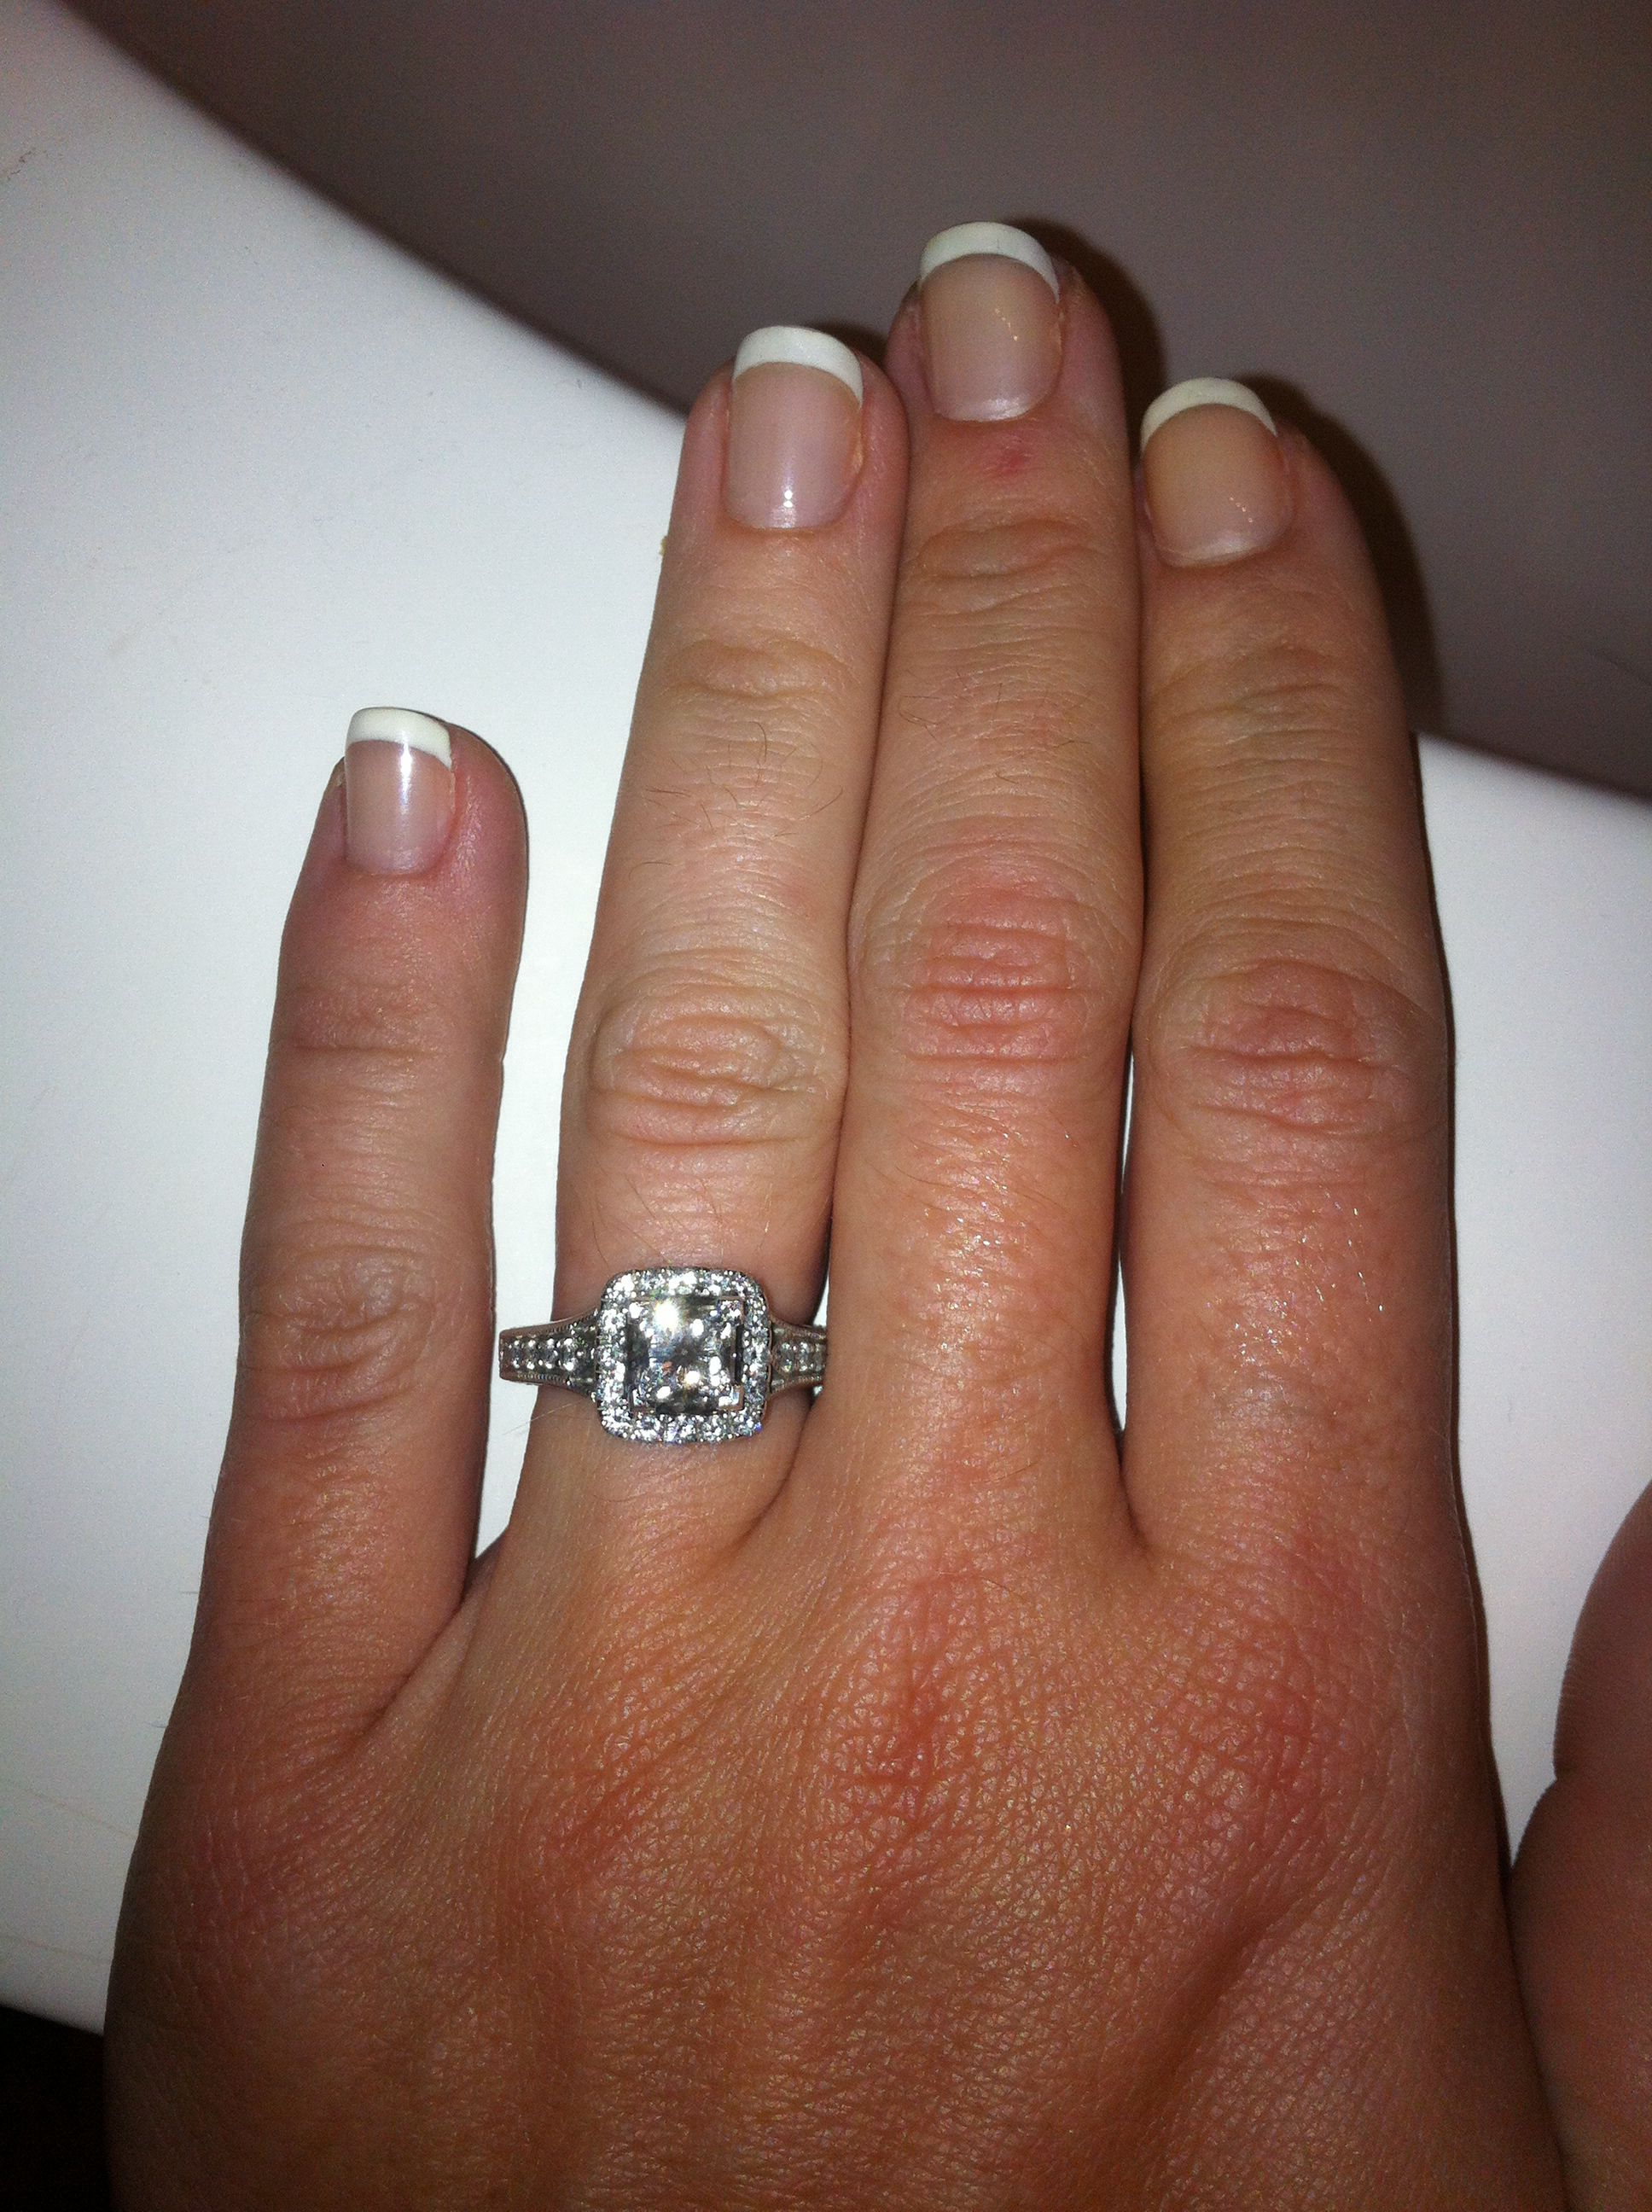 My Engagement Ring Ideal Cut Tolkowsky Diamond With Halo